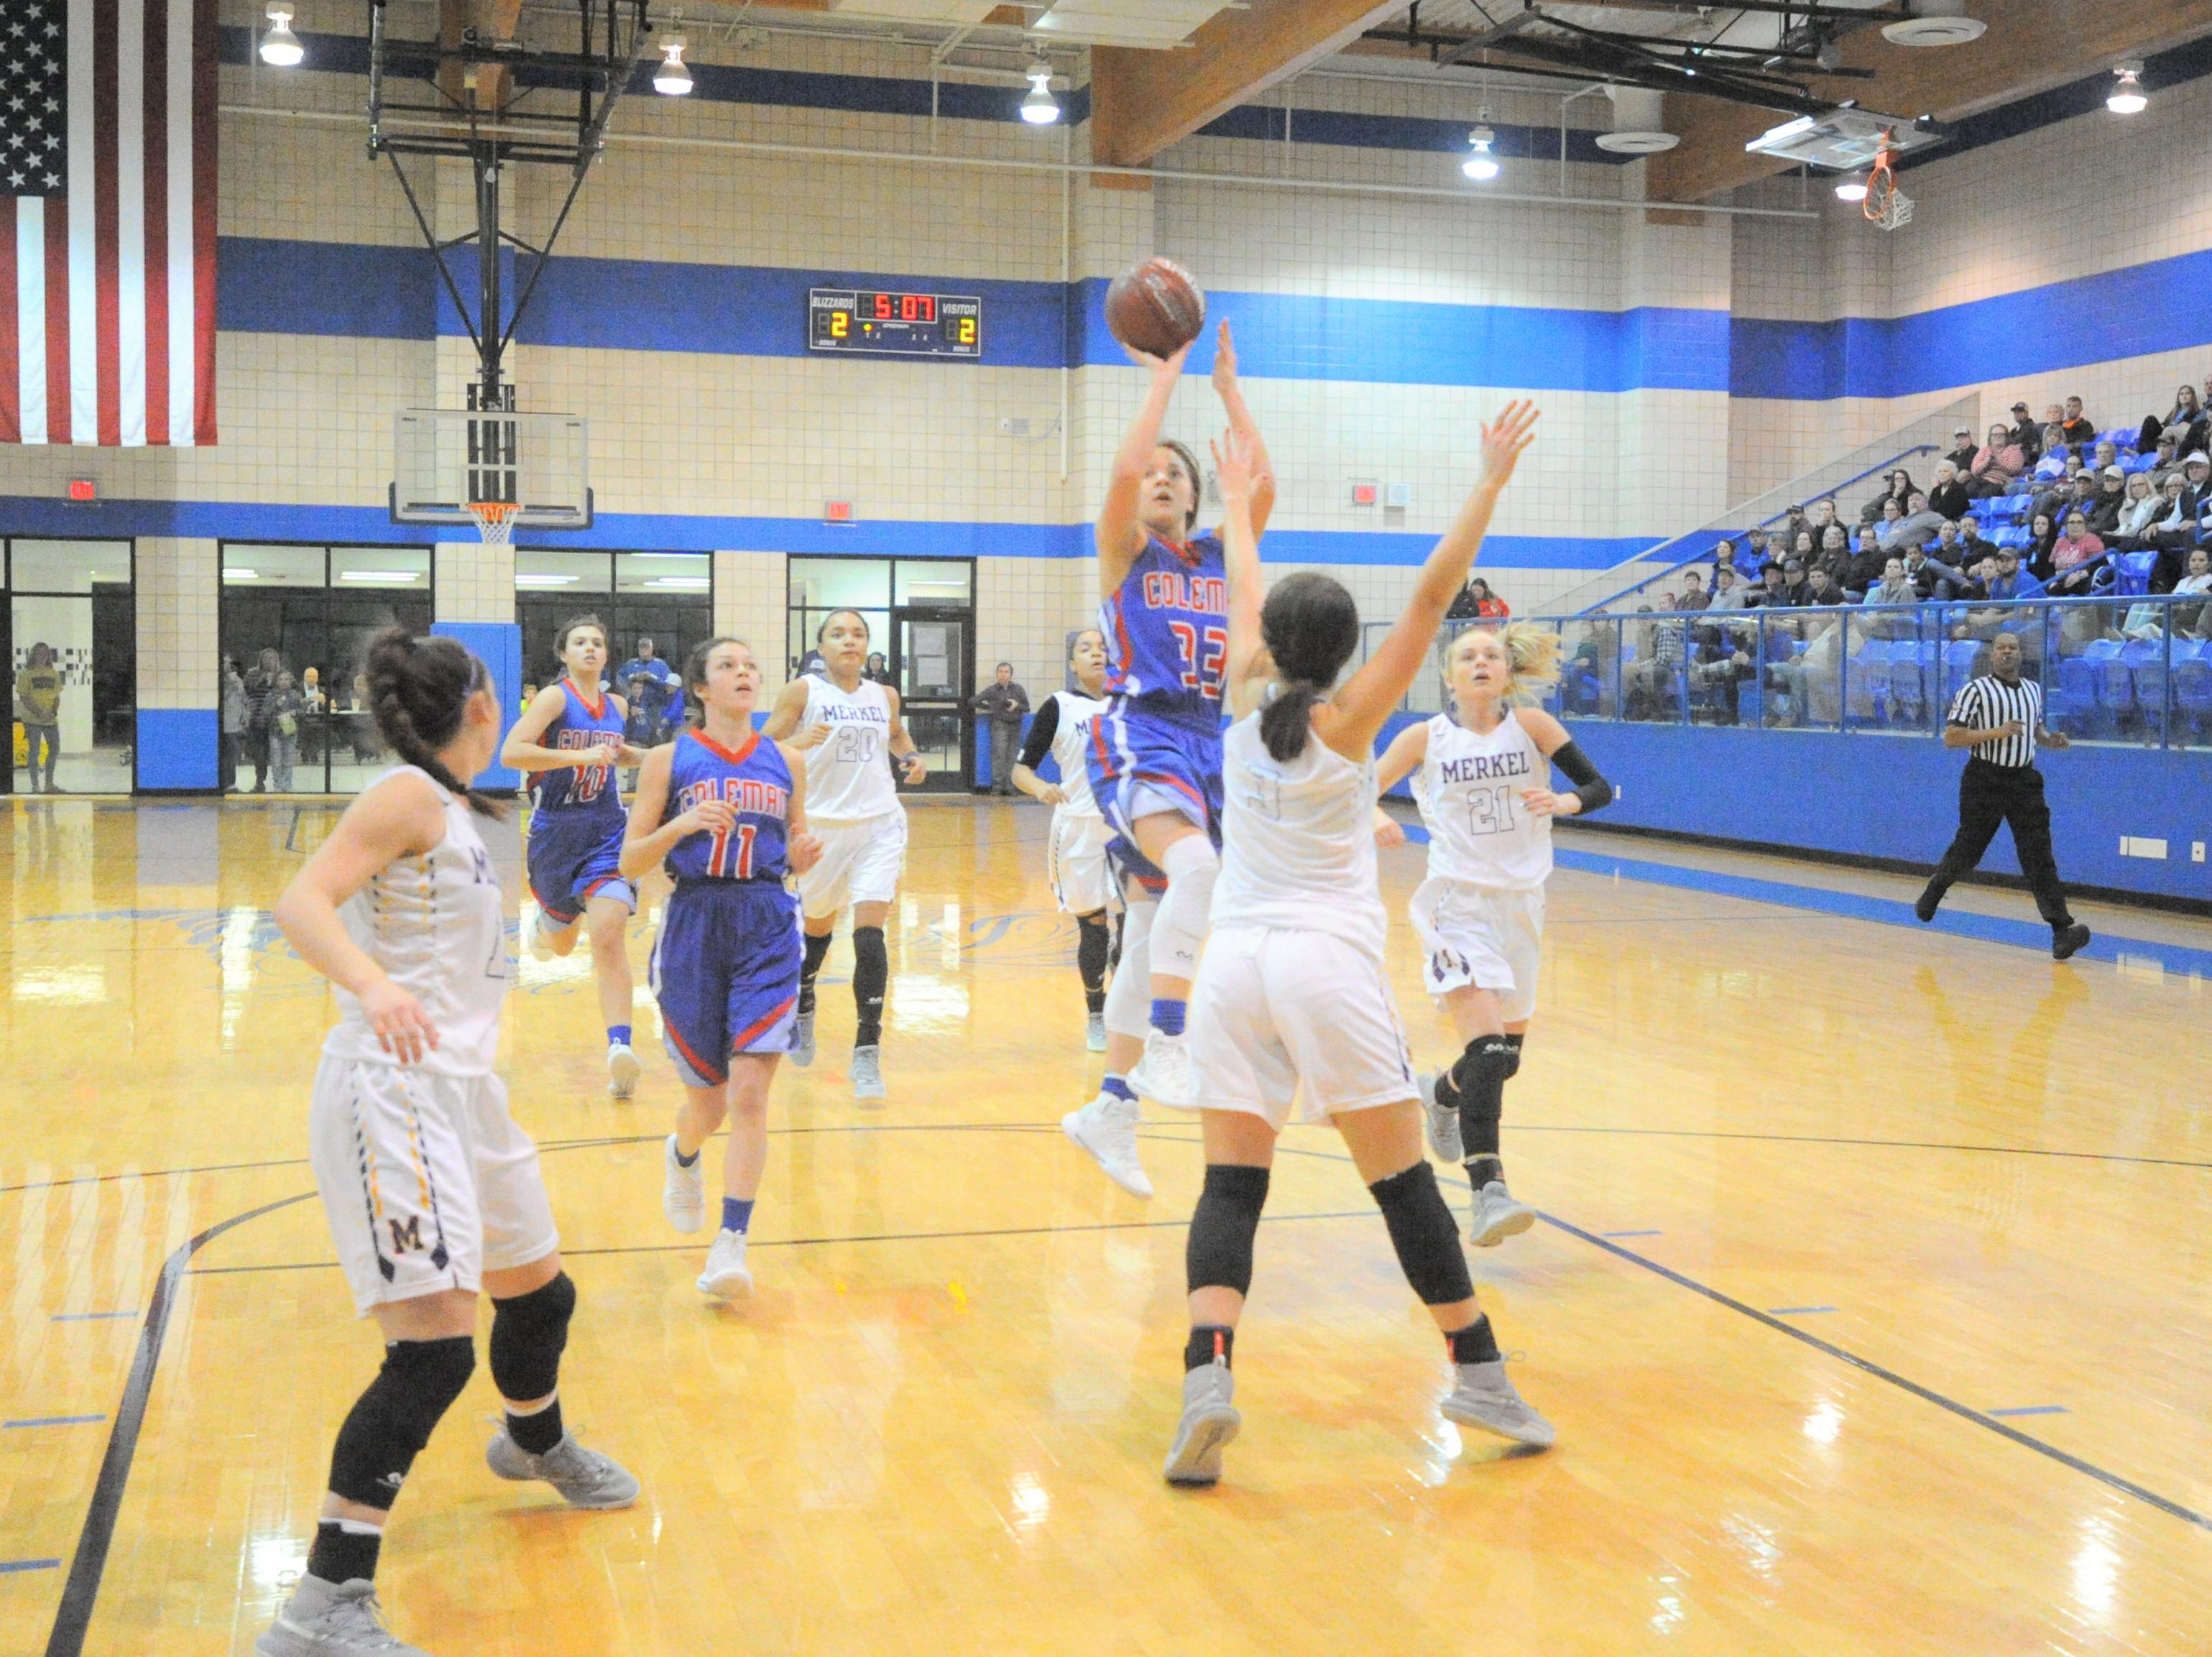 Coleman junior Ginny Arnold (33) gets ready to take a shot against Merkel in a bi-district playoff at Winters High School on Monday, Feb. 11, 2019.